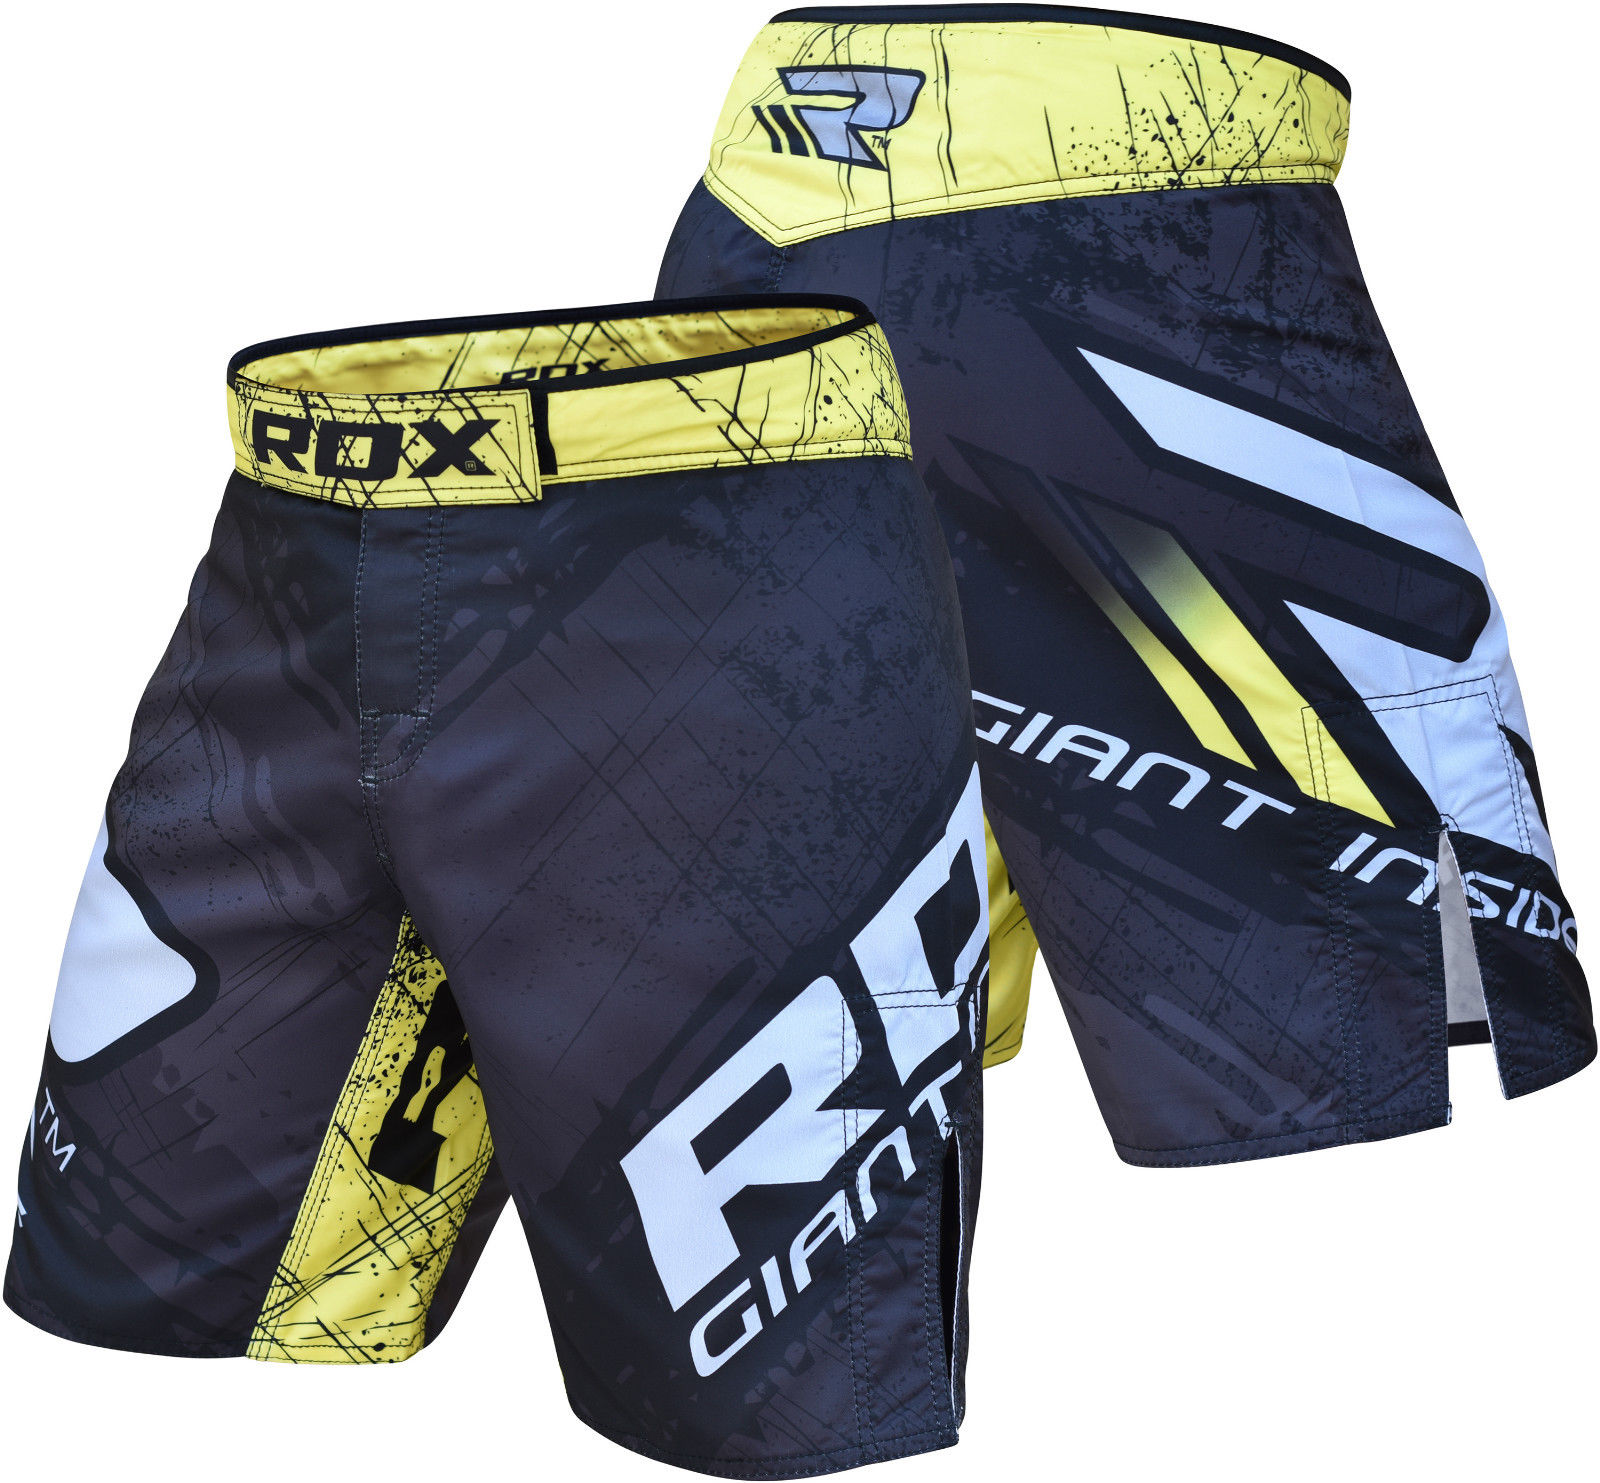 RDX R4 MMA Fight Shorts, Black/Yellow, L